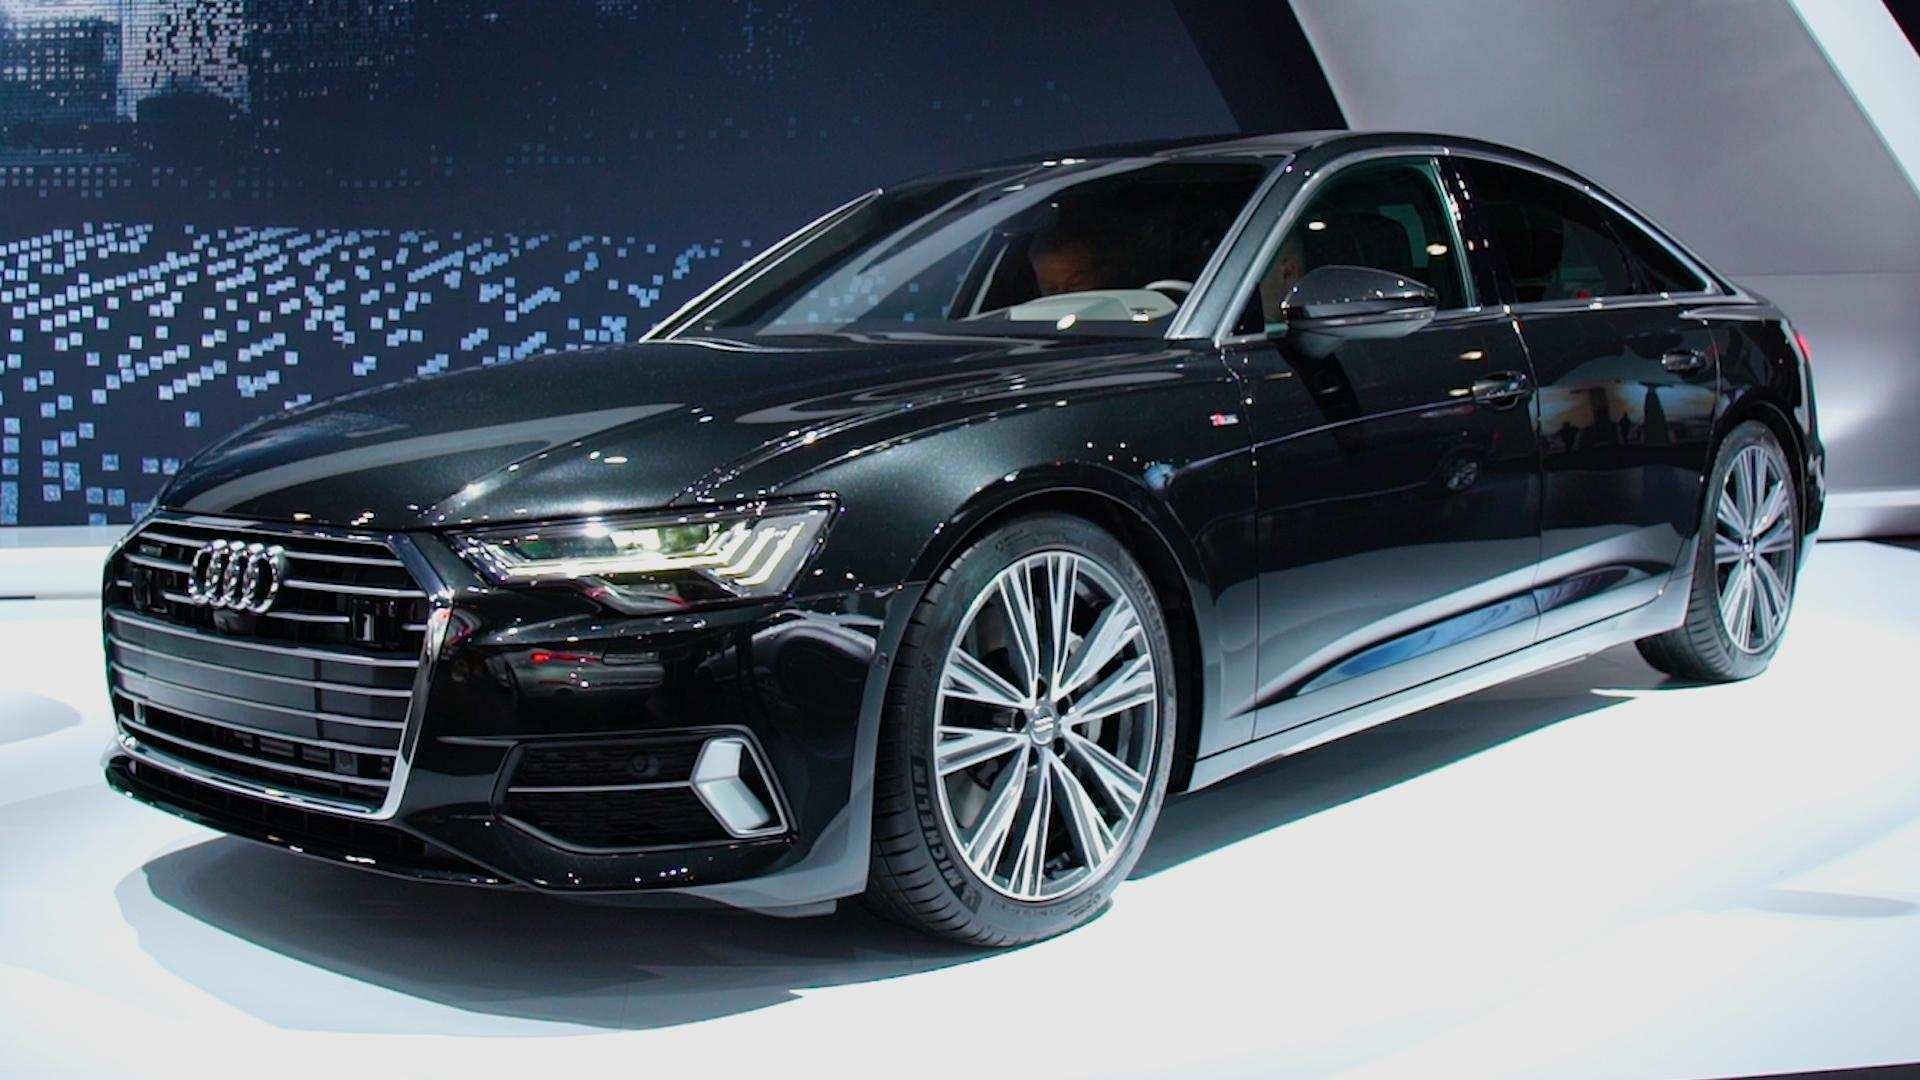 70 Great 2019 Audi A6 Release Date Research New for 2019 Audi A6 Release Date